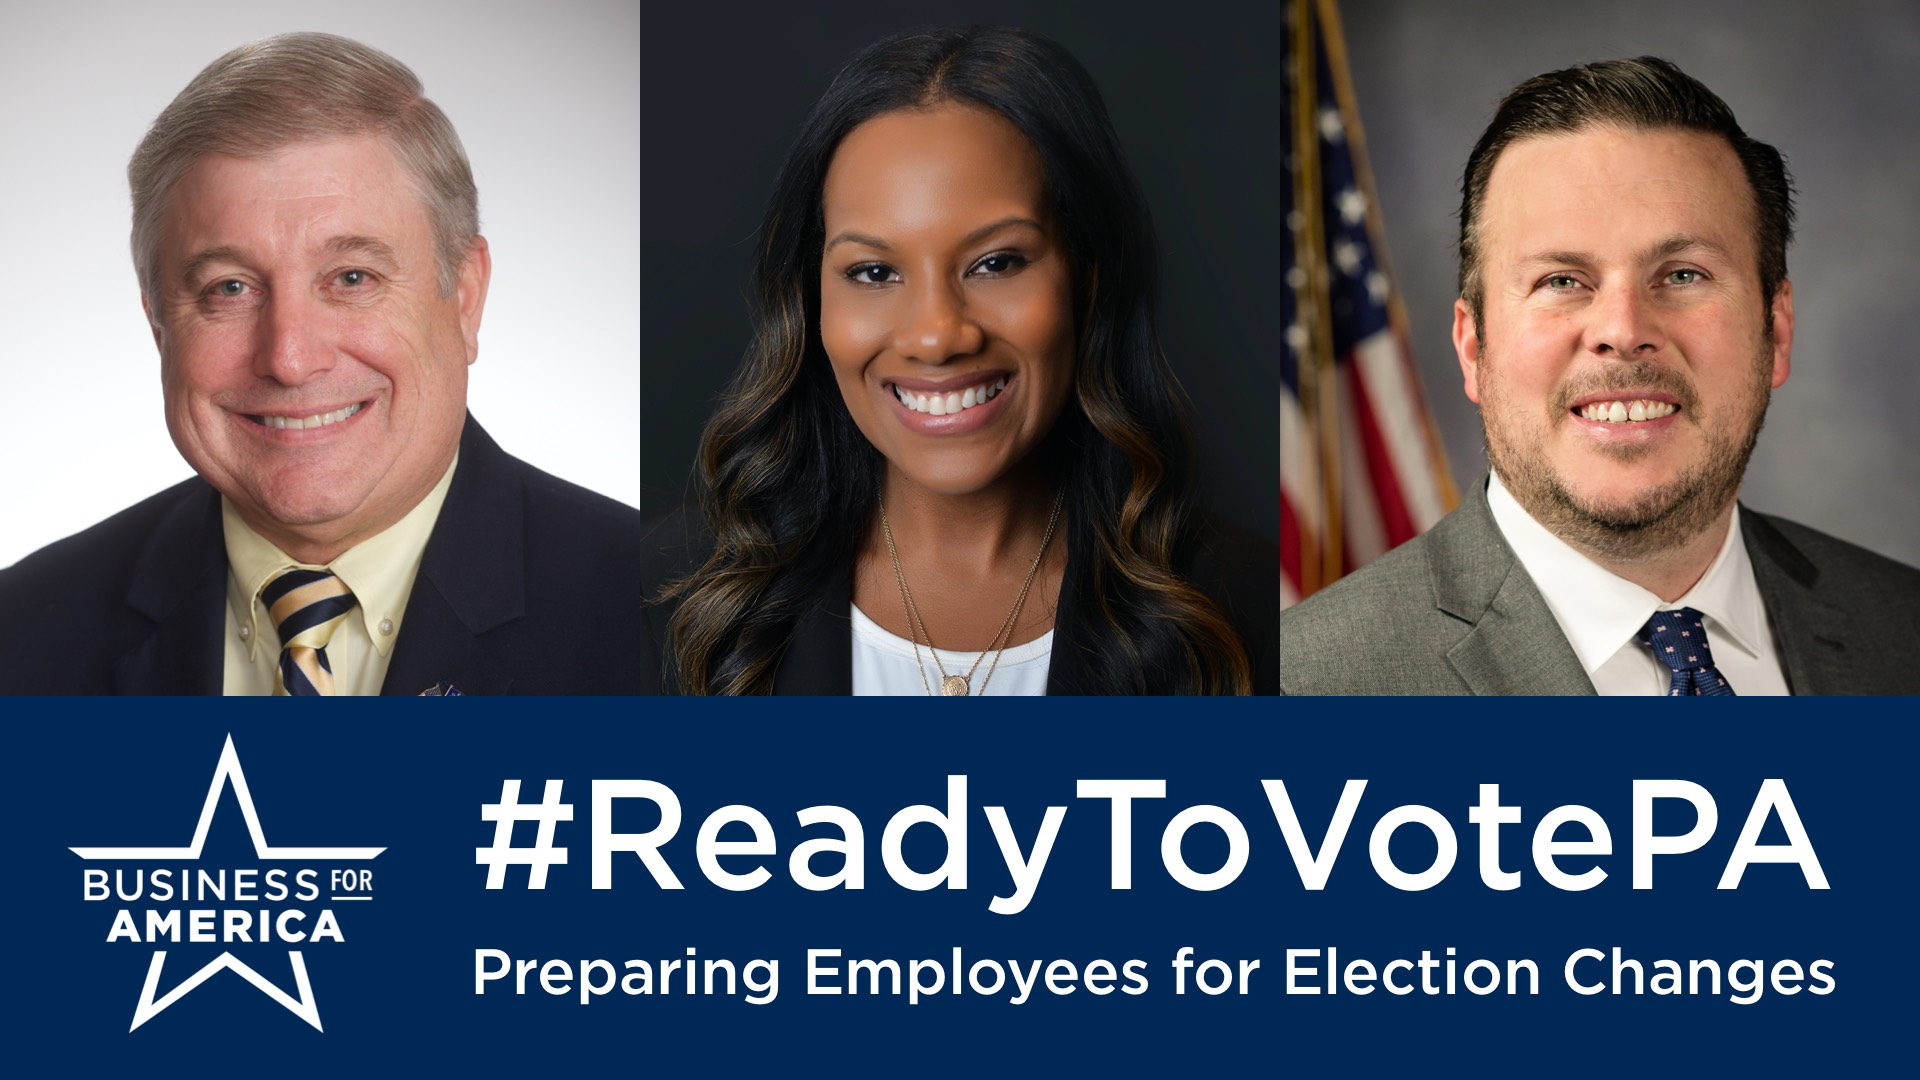 Ready to Vote in PA: Preparing Employees for 2020 Election Changes